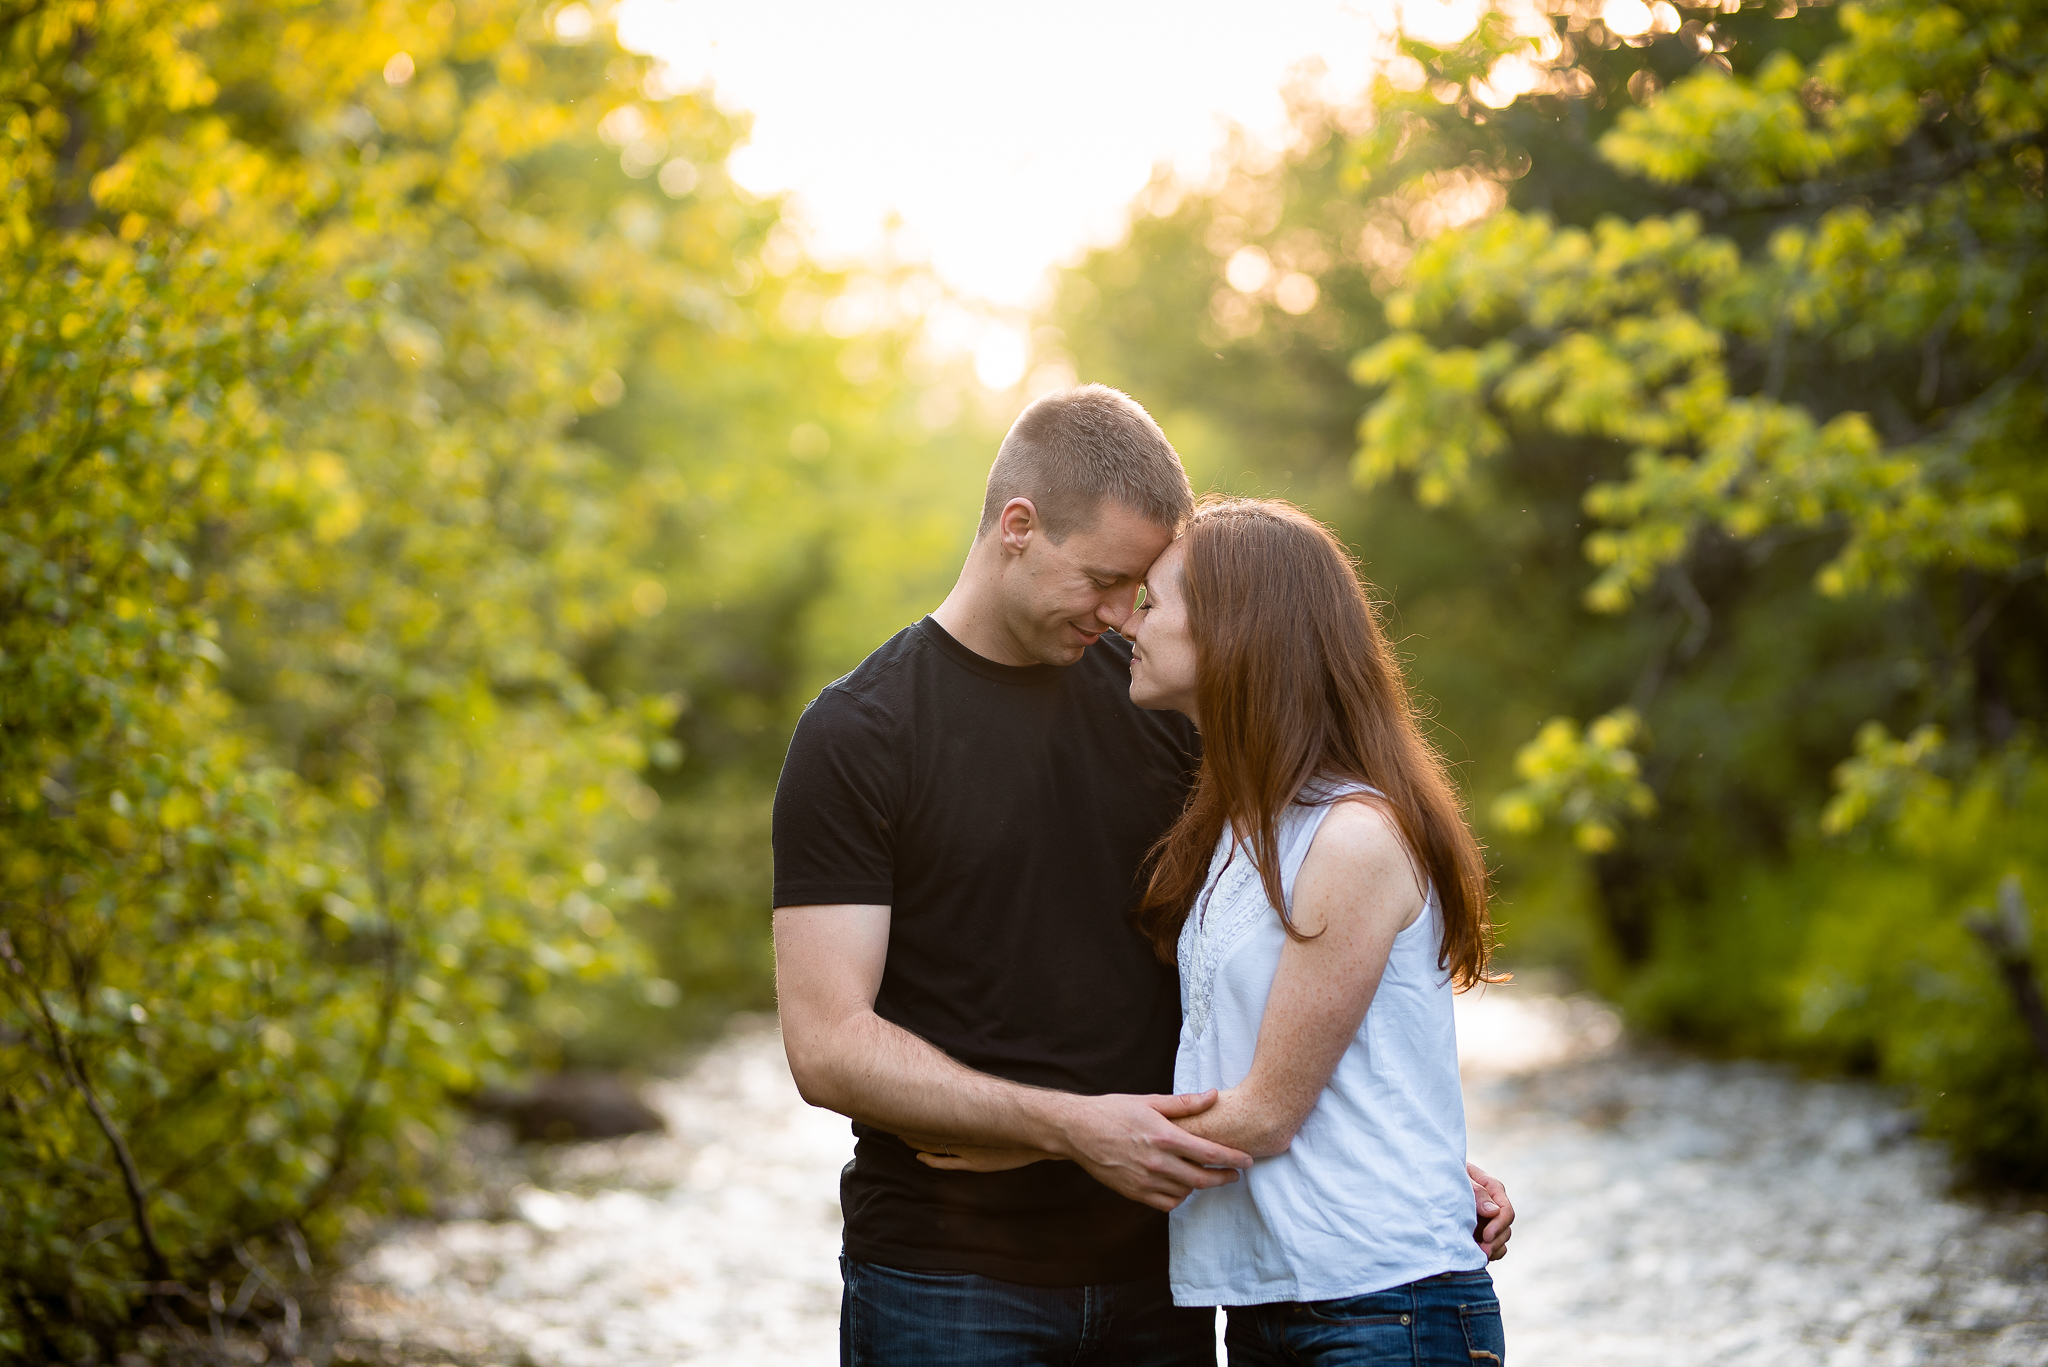 Couples537NaomiLuciennePhotography062019-Edit.jpg